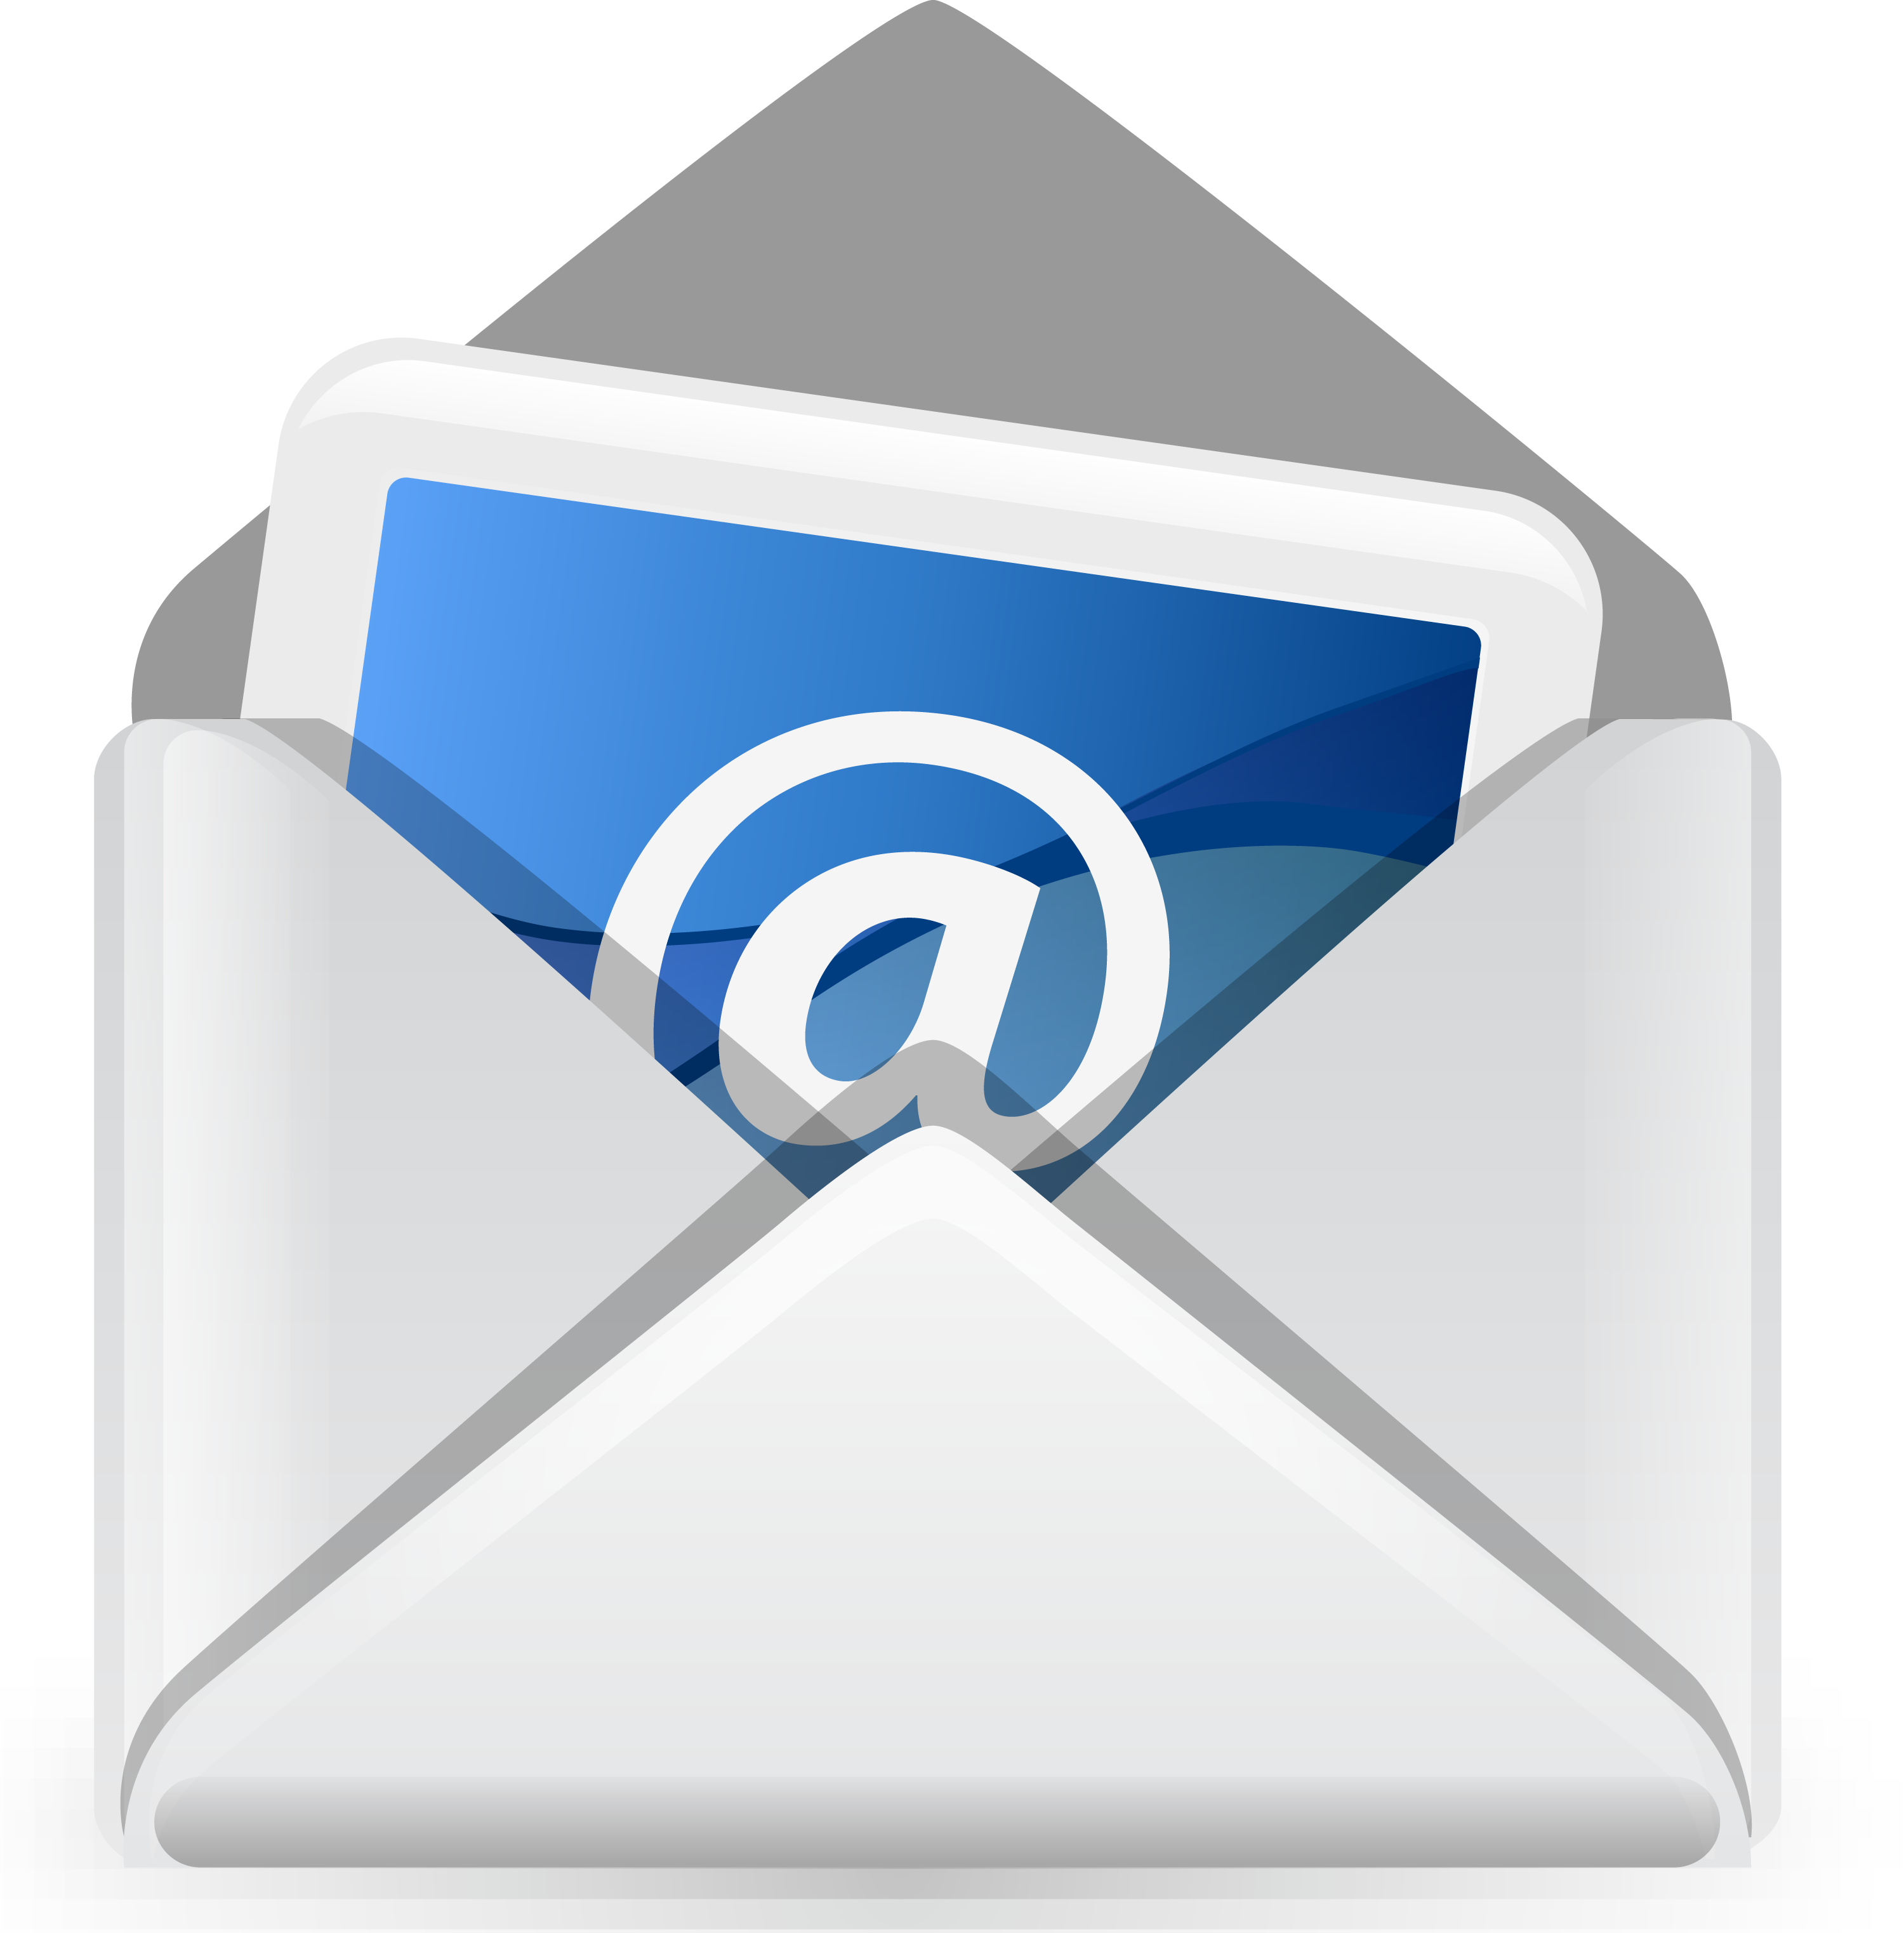 email icons png - photo #19